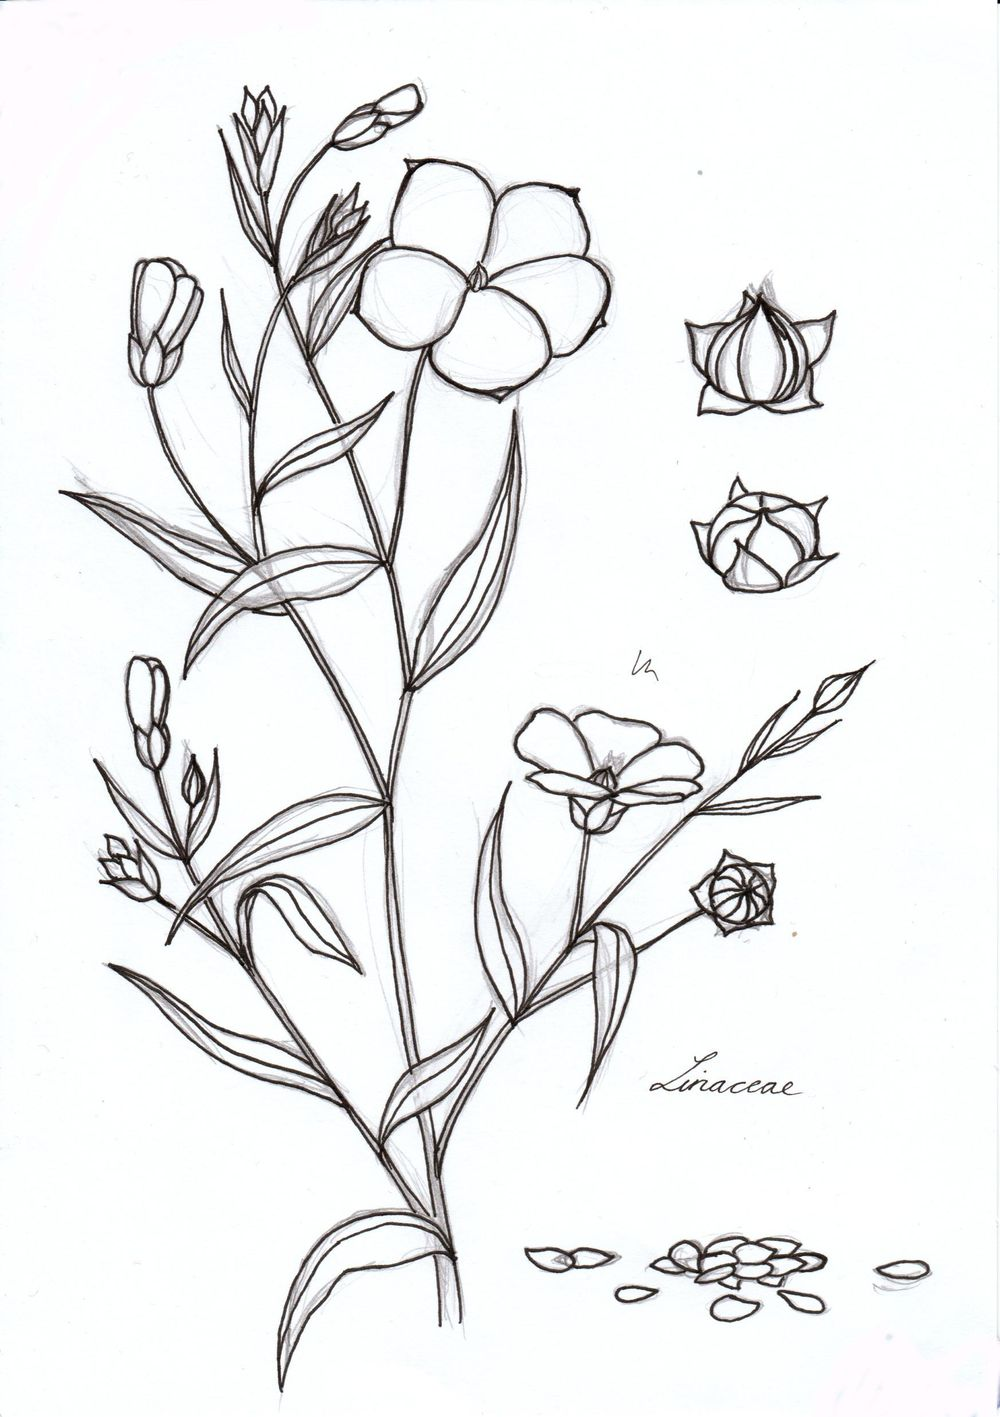 Linseed illustration - image 1 - student project